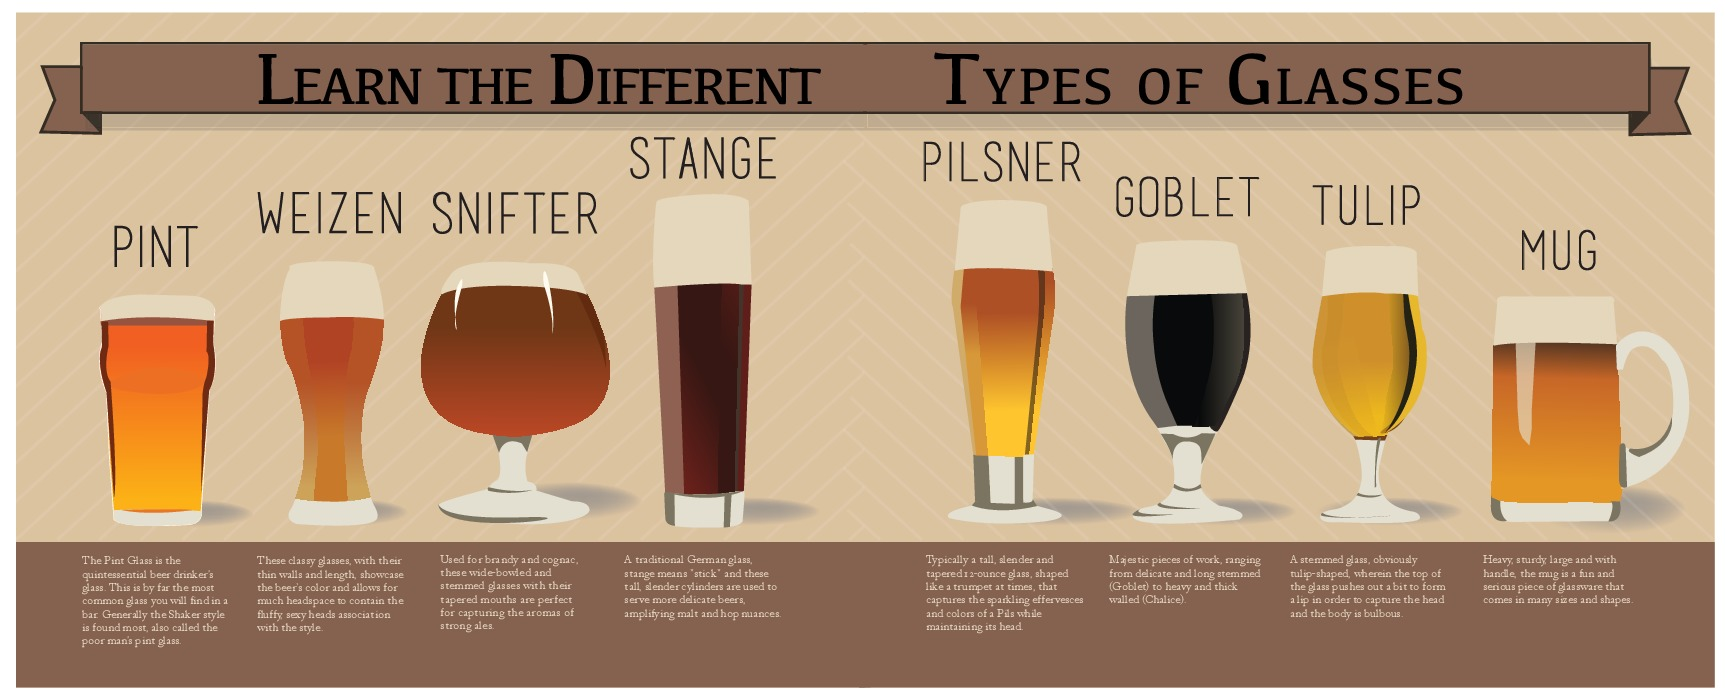 Different Beer Glasses Explained : learn the different types of glasses530cfac7029c3 from www.finedininglovers.com size 1725 x 700 jpeg 183kB